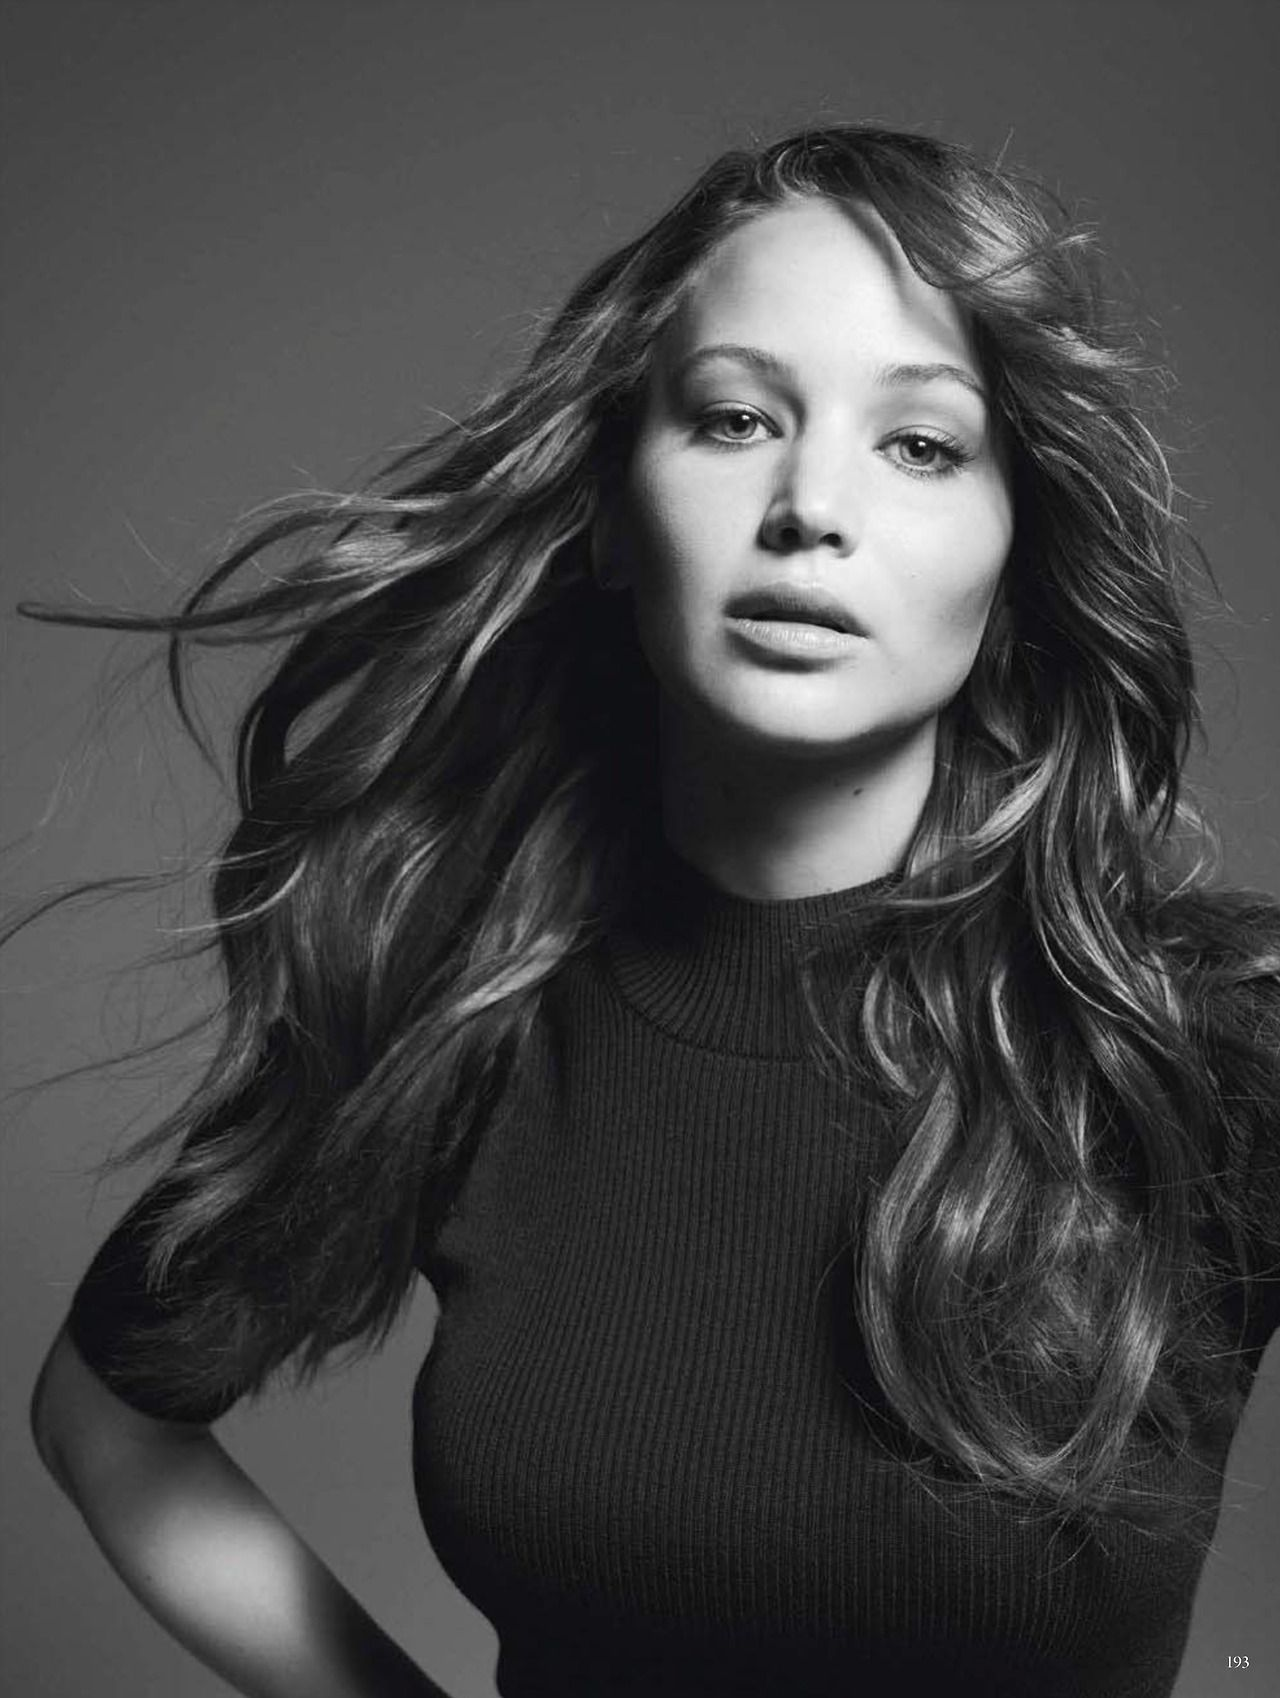 New Outtakes From Jennifer Lawrence's Time 100 Photoshoot http://www.panempropaganda.com/movie-countdown/2013/12/27/new-outtakes-from-jennifer-lawrences-time-100-photoshoot.html/